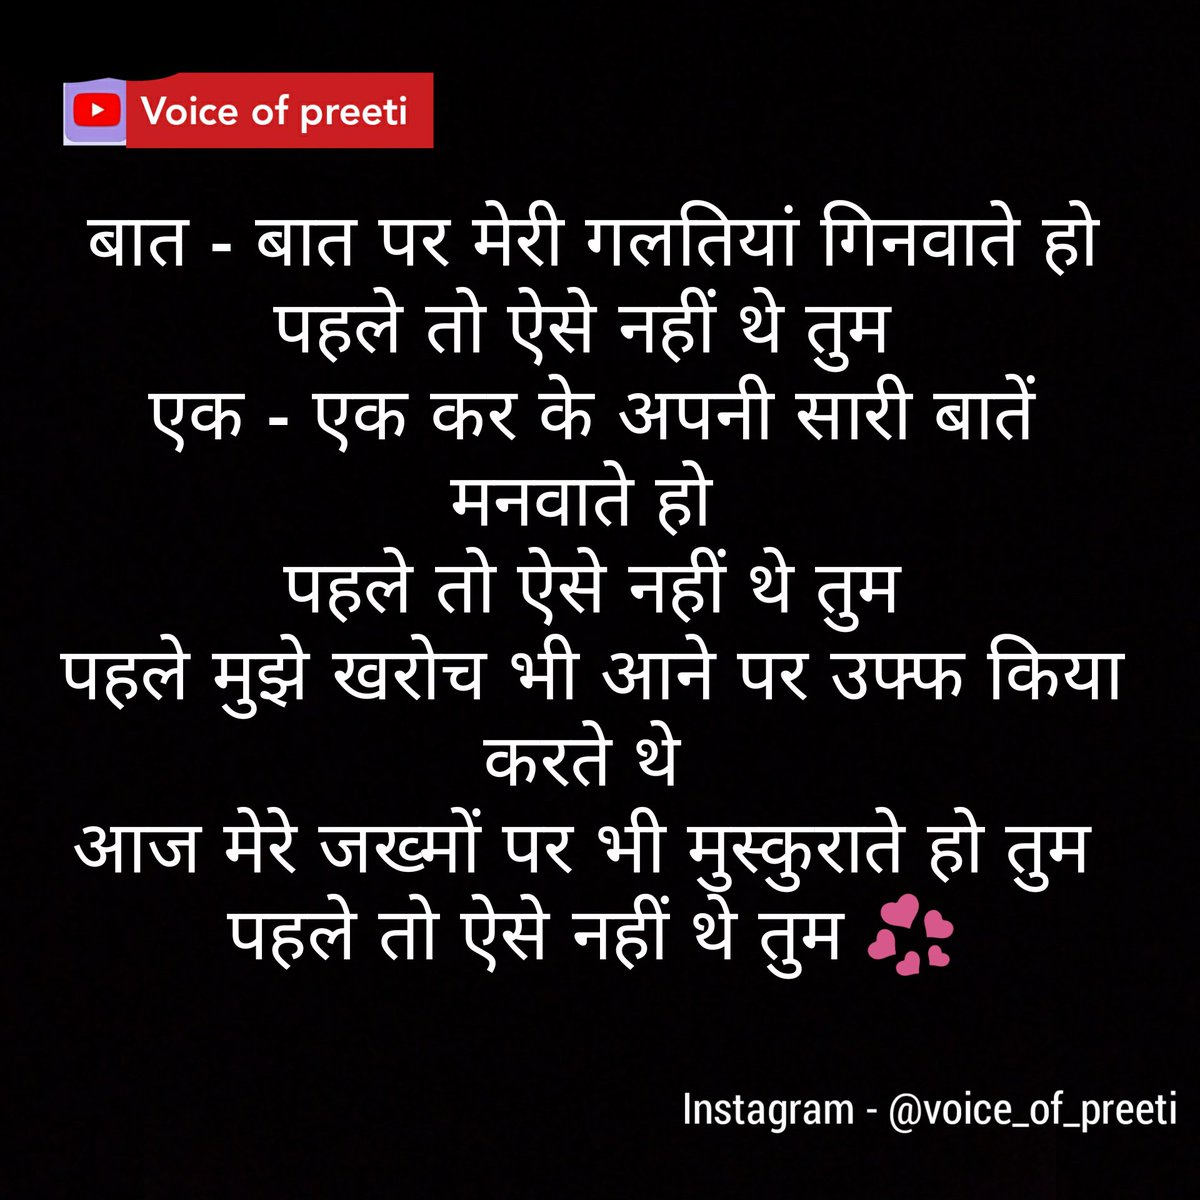 #lovefighters #ShayriTwitter #hindipoetry #feelings #POEMS #Voice #hindishayri #lovepoetry #alfazmere https://t.co/pgX7bszGoe